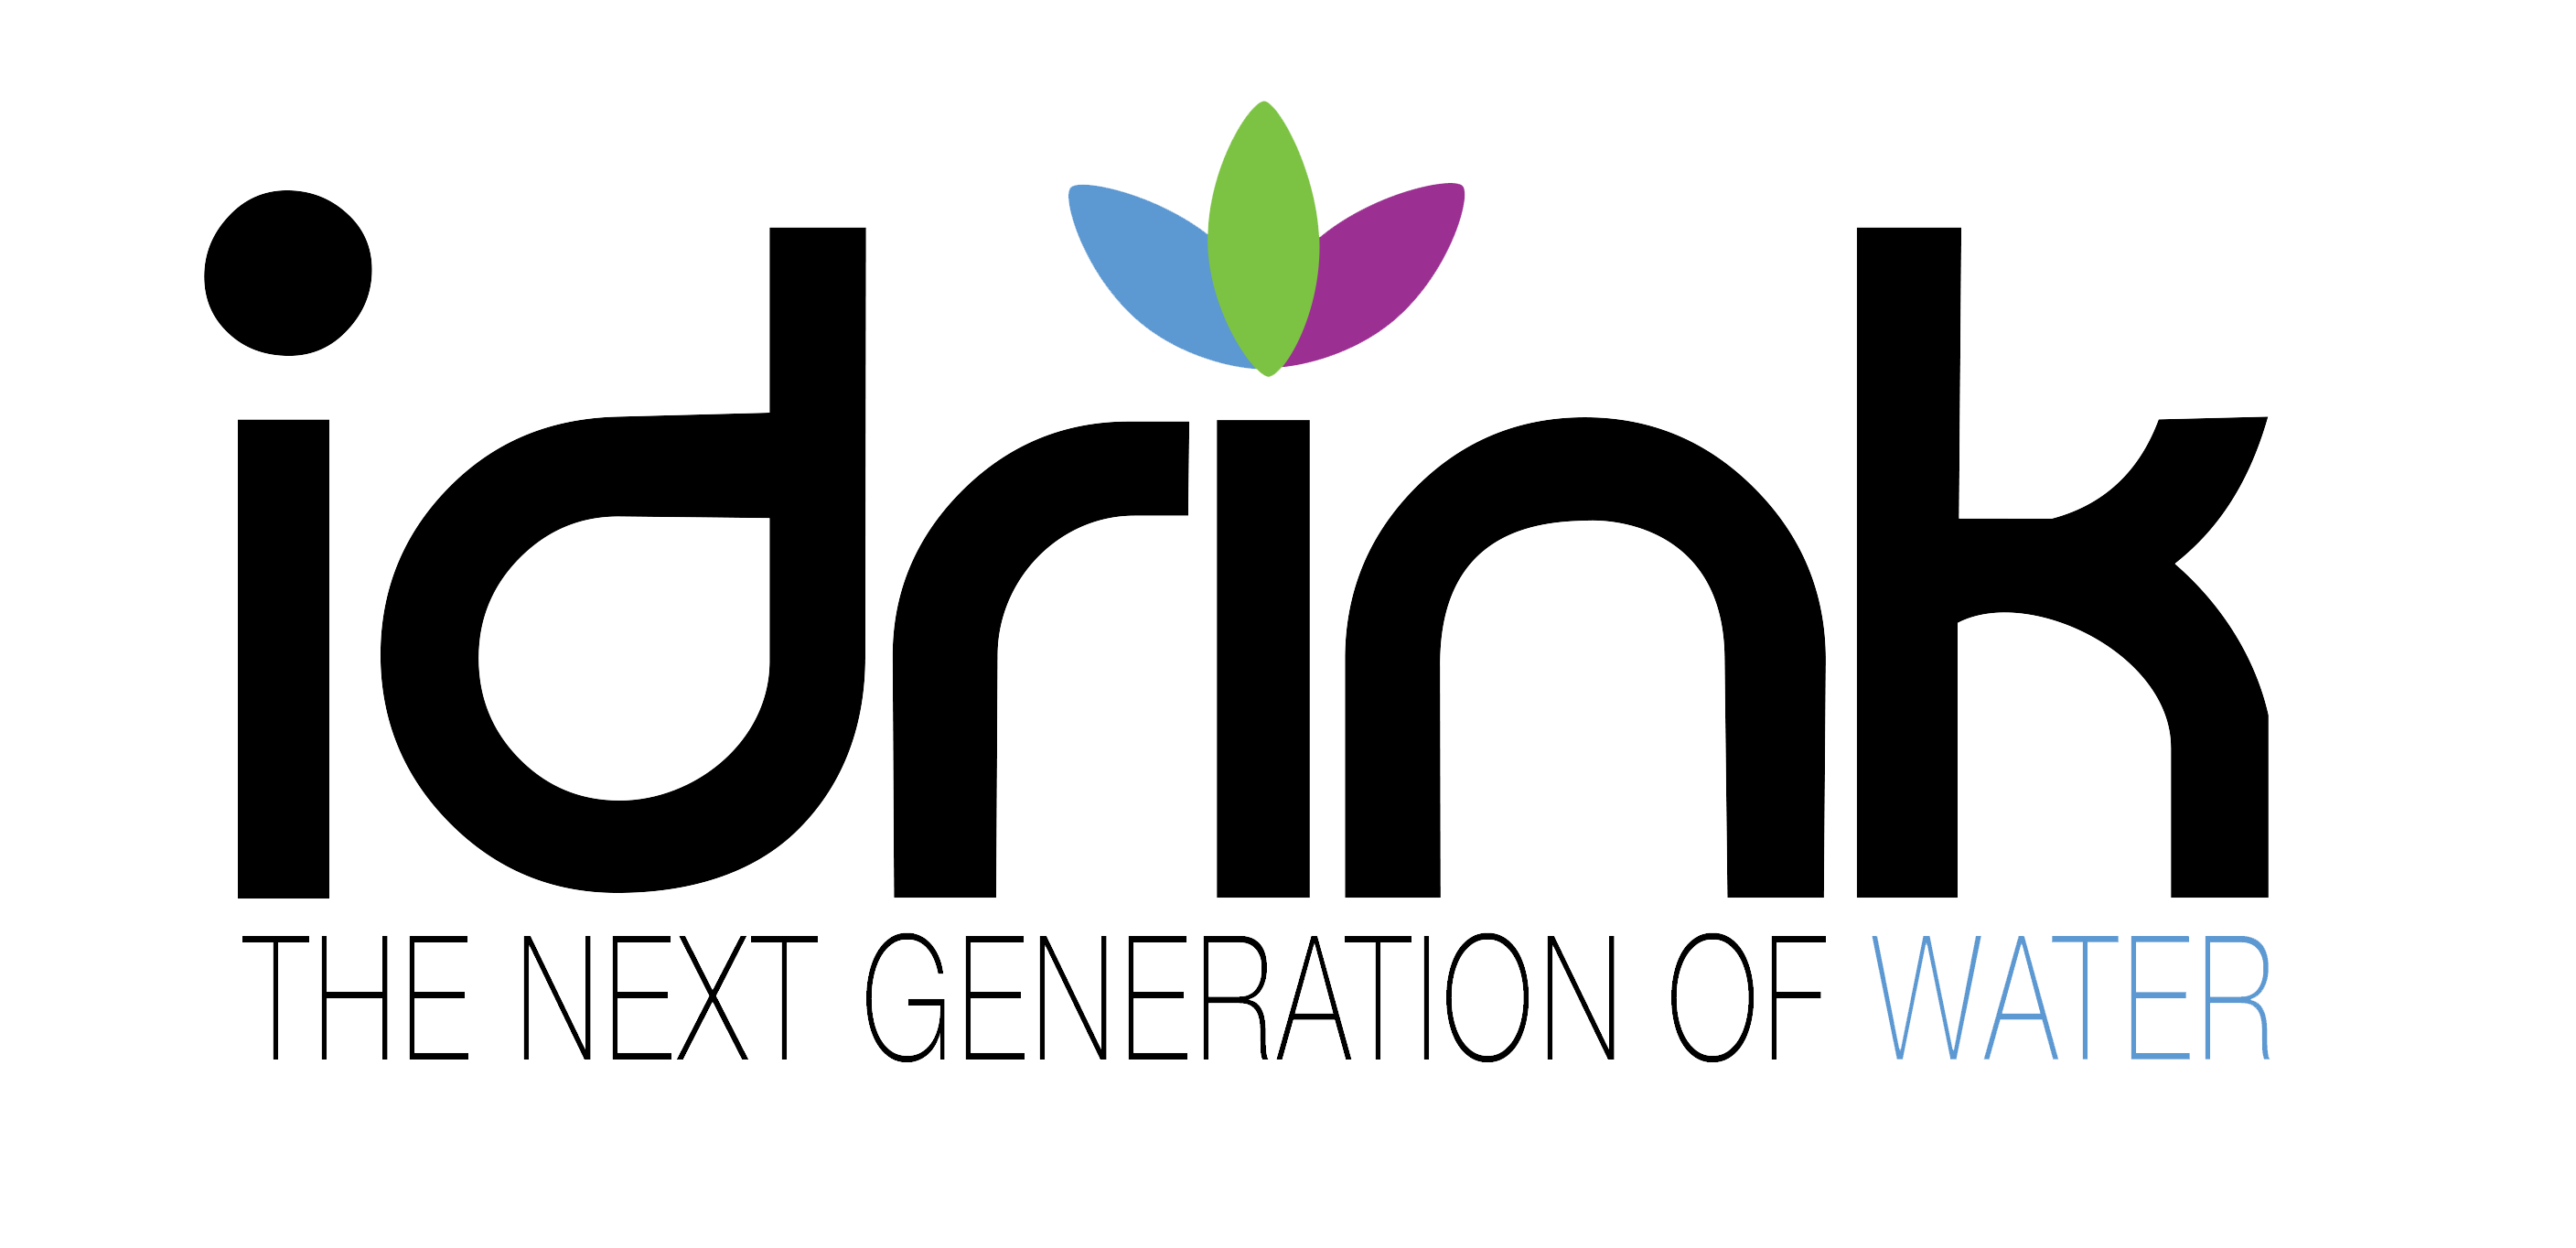 Idirnk Generation Copy